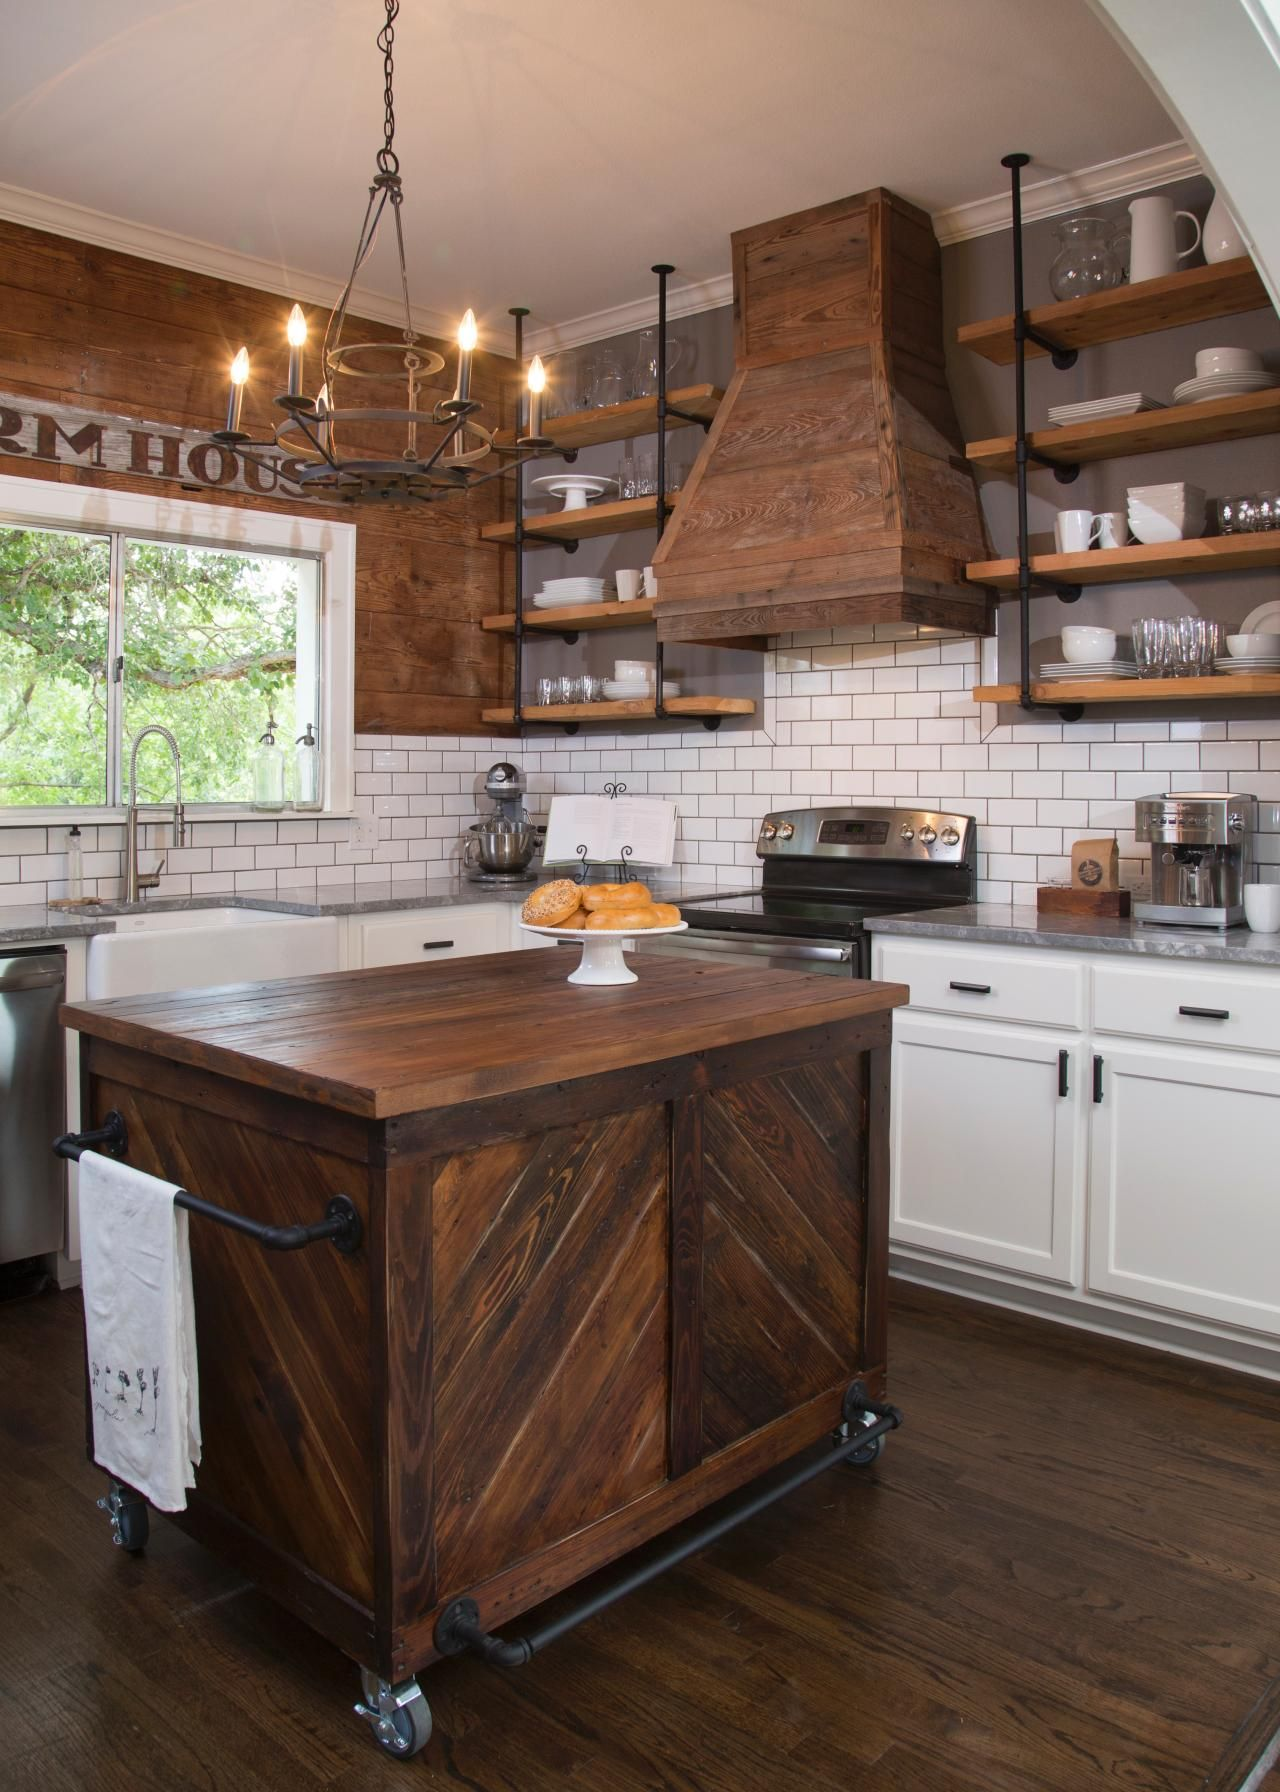 Fixer upper brass kitchen - Fixer Upper S Fourth Season Is Shooting Now And As Reported In A Filming Update From